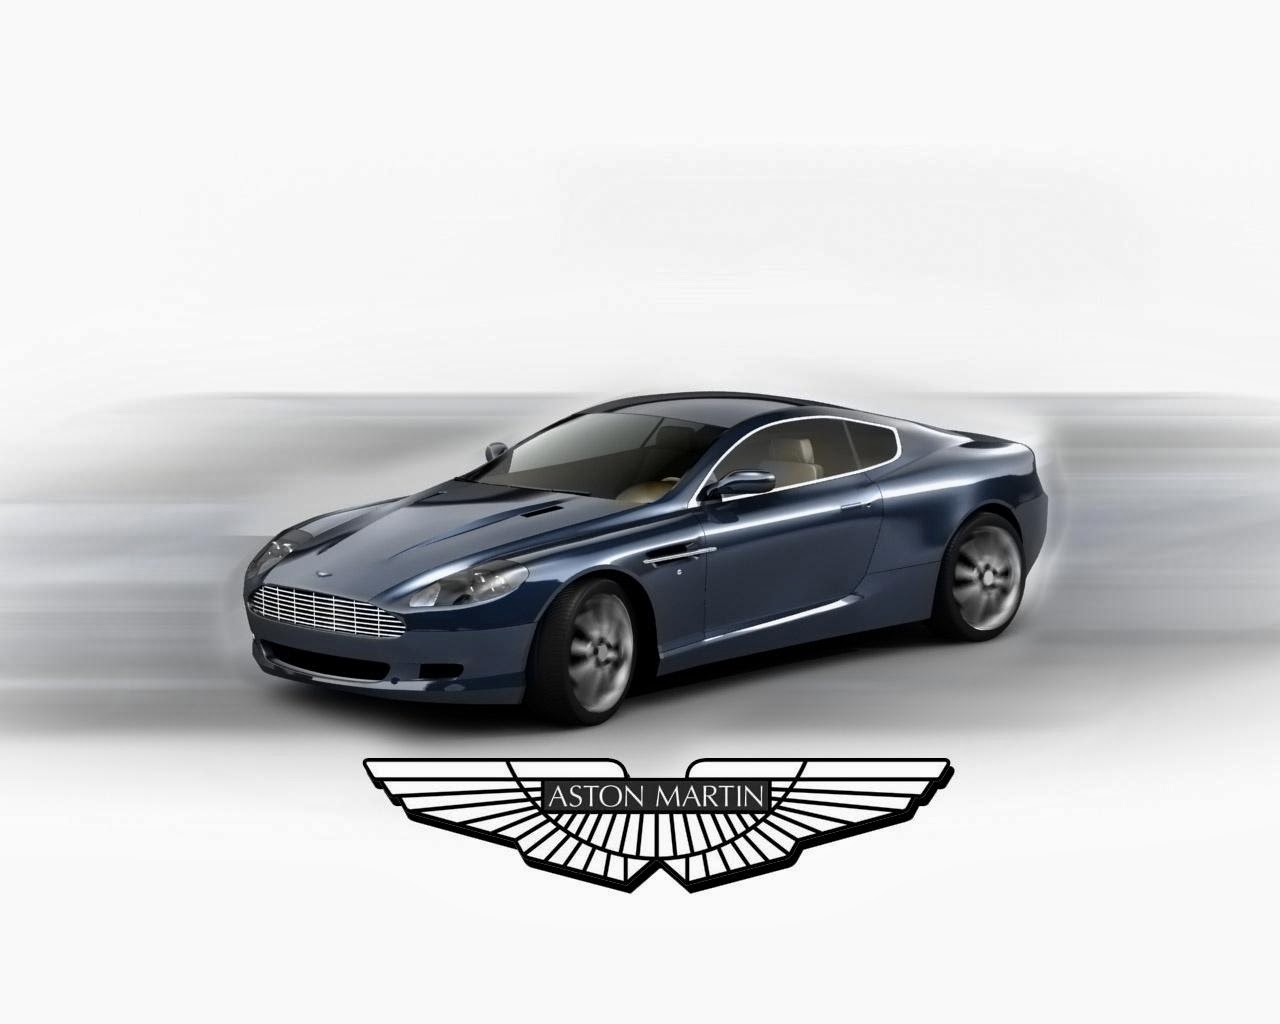 HD Wallpapers-Aston Martin DB9 ~ HD WALLPAPERS